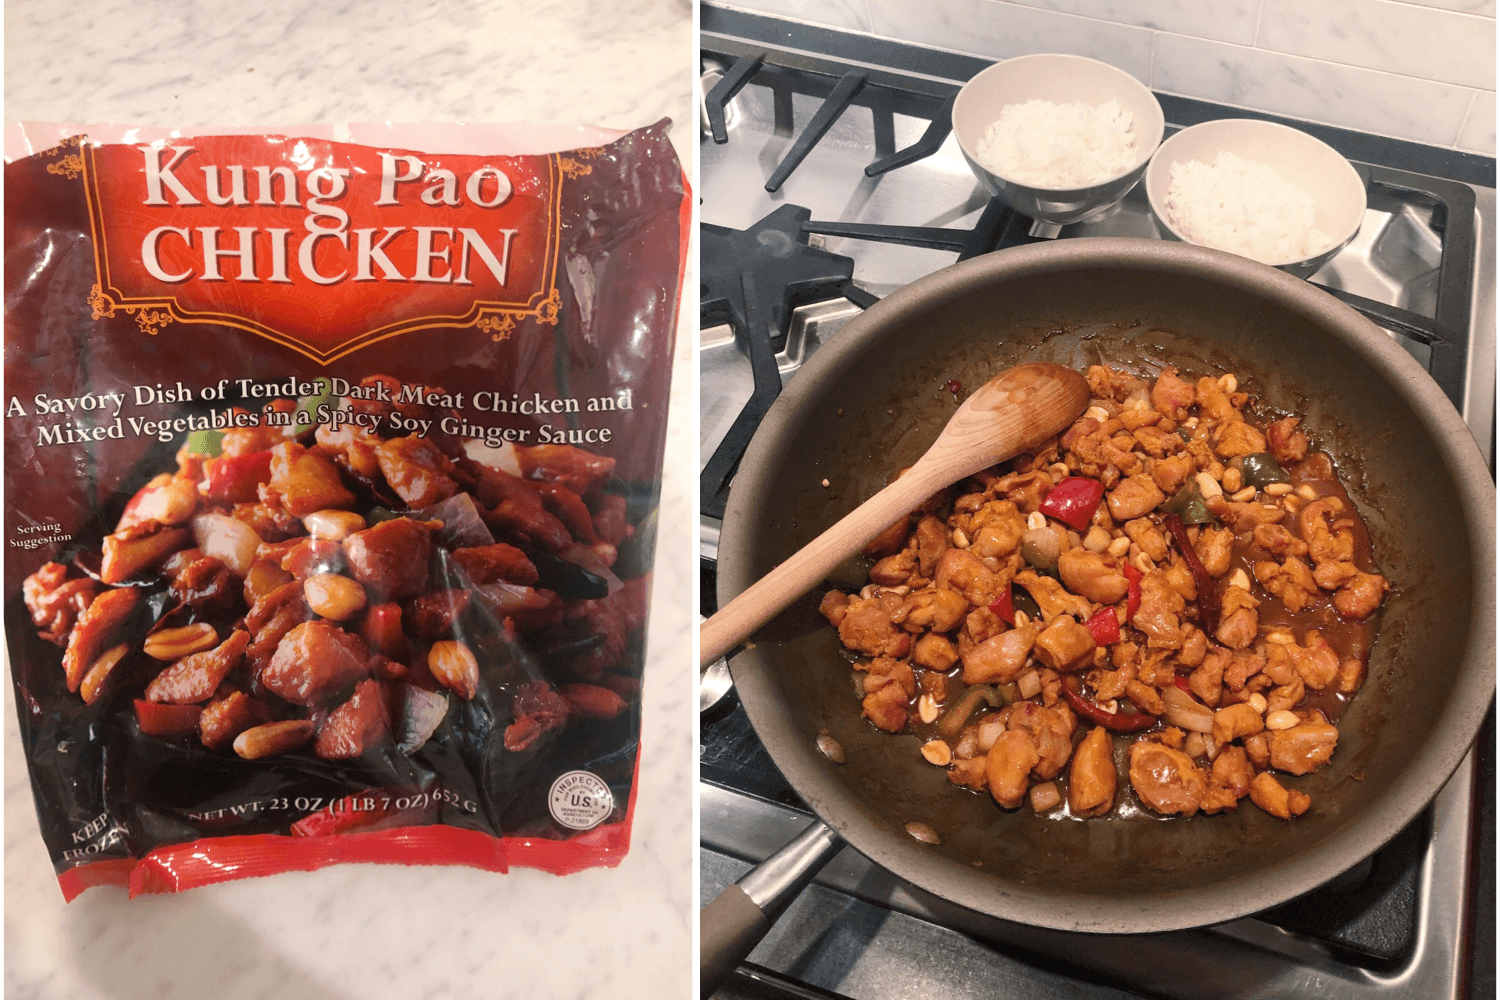 交易员乔's kung pao chicken review